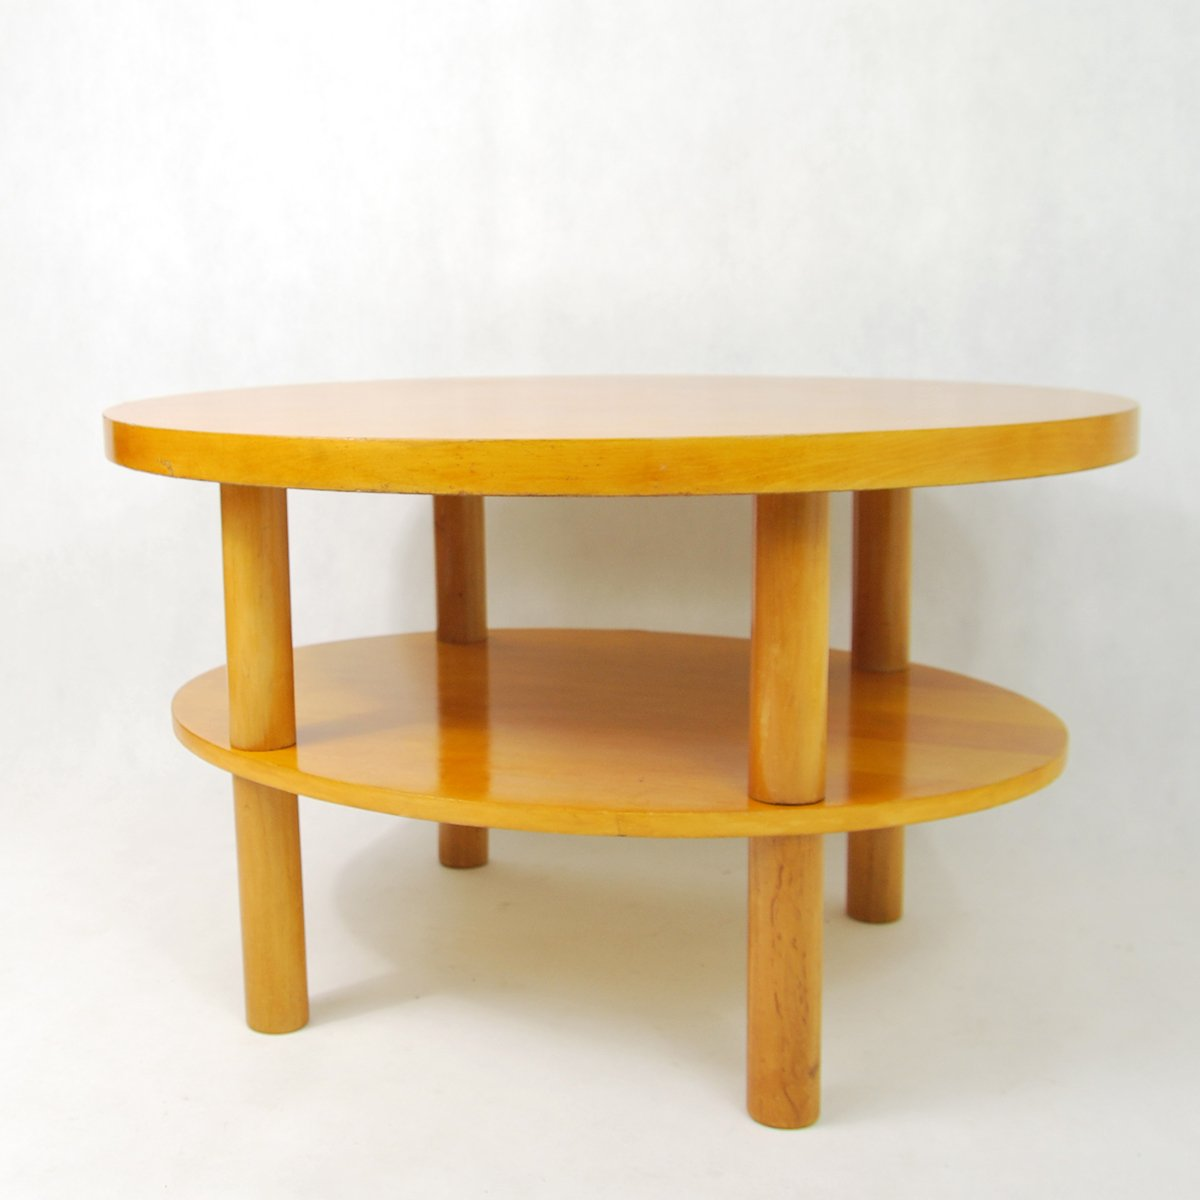 Polish Elliptical Coffee Table 1980s For Sale At Pamono